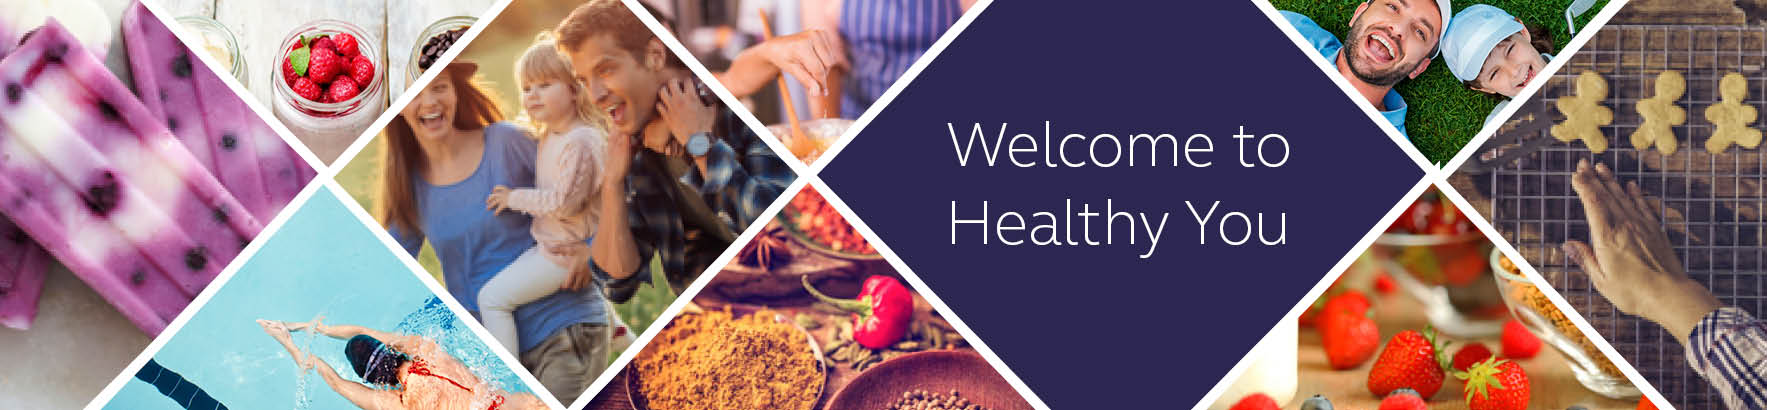 Welcome to Healthy You.